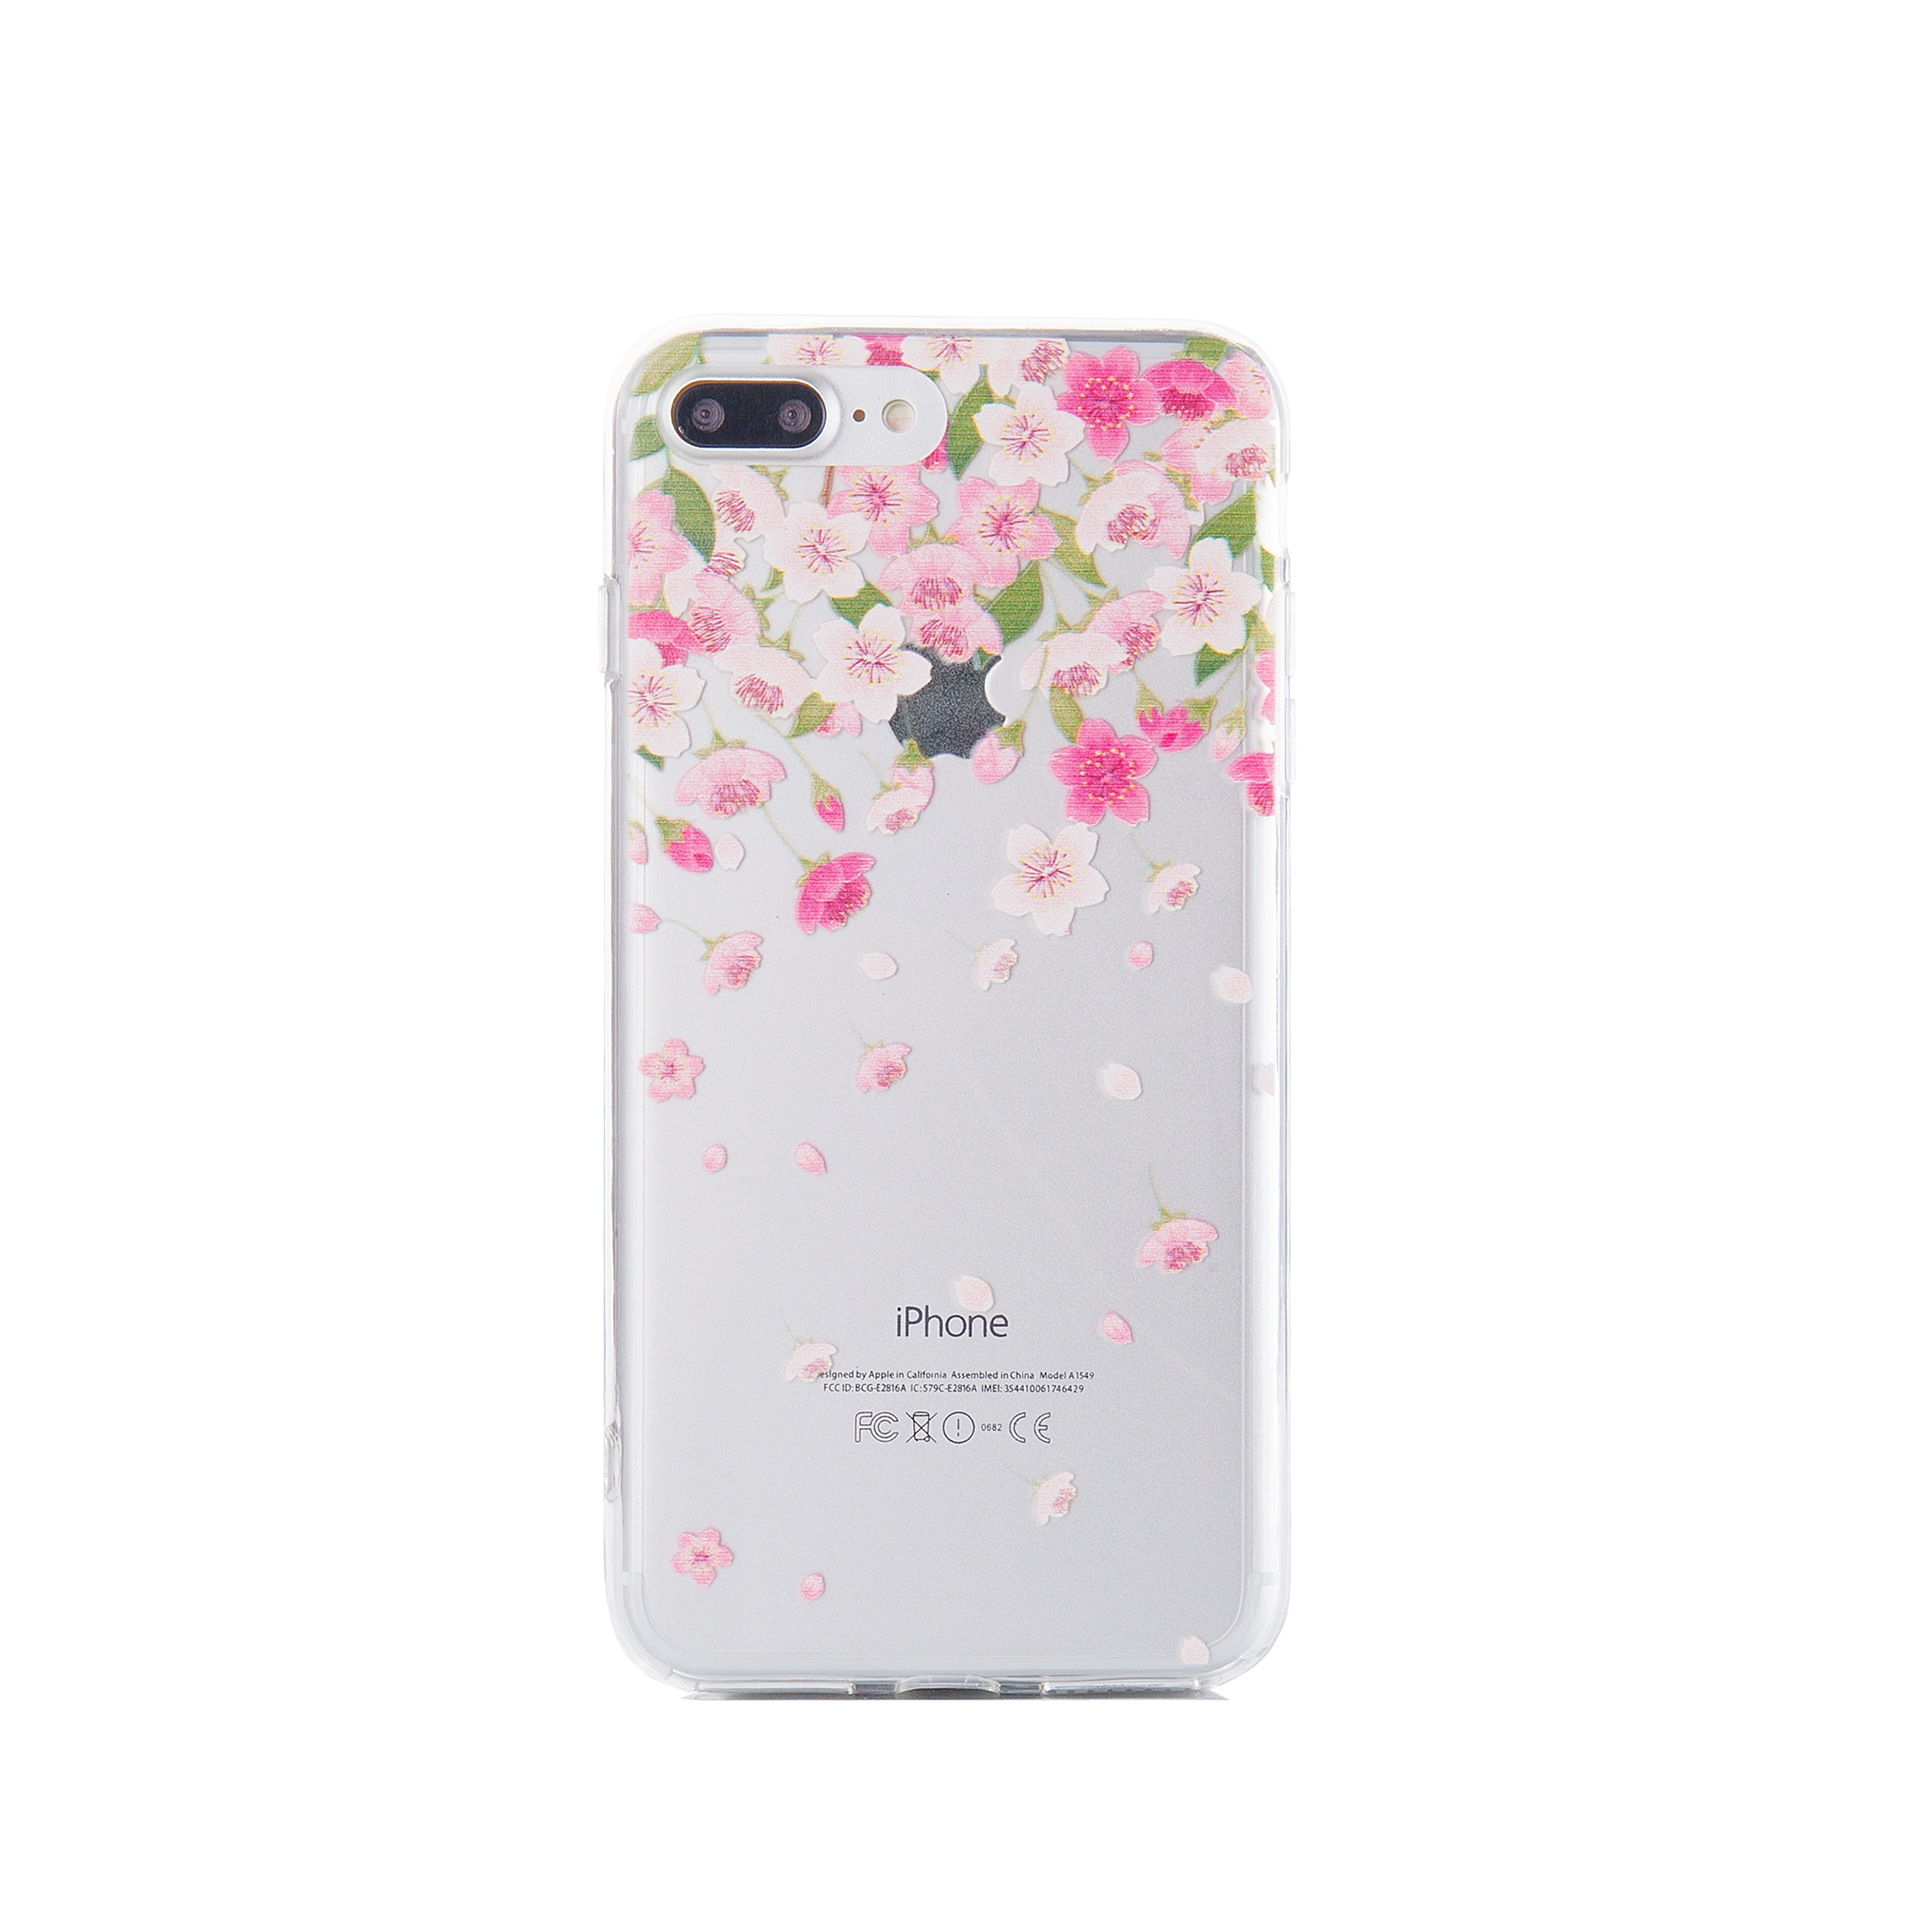 2017 New Product TPU PC 3D sublimation custom Mobile Phone Case Cover Shell For iPhone 6 6sMobile ph